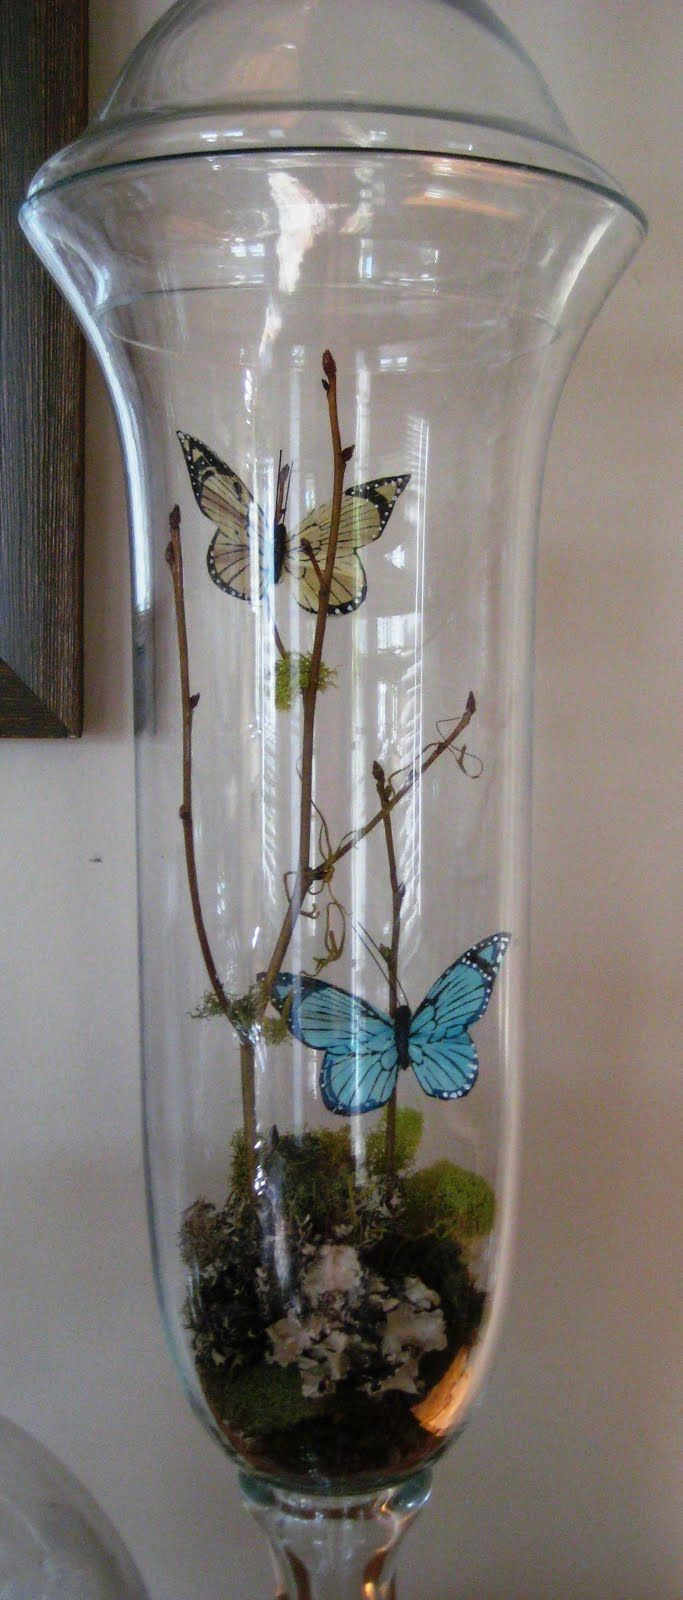 Spring apothecary jar @Amy Lyons Woolery I have some moss you can borrow. You could even make the butterflies out of cute scrapbook paper and glue them to some found twigs...